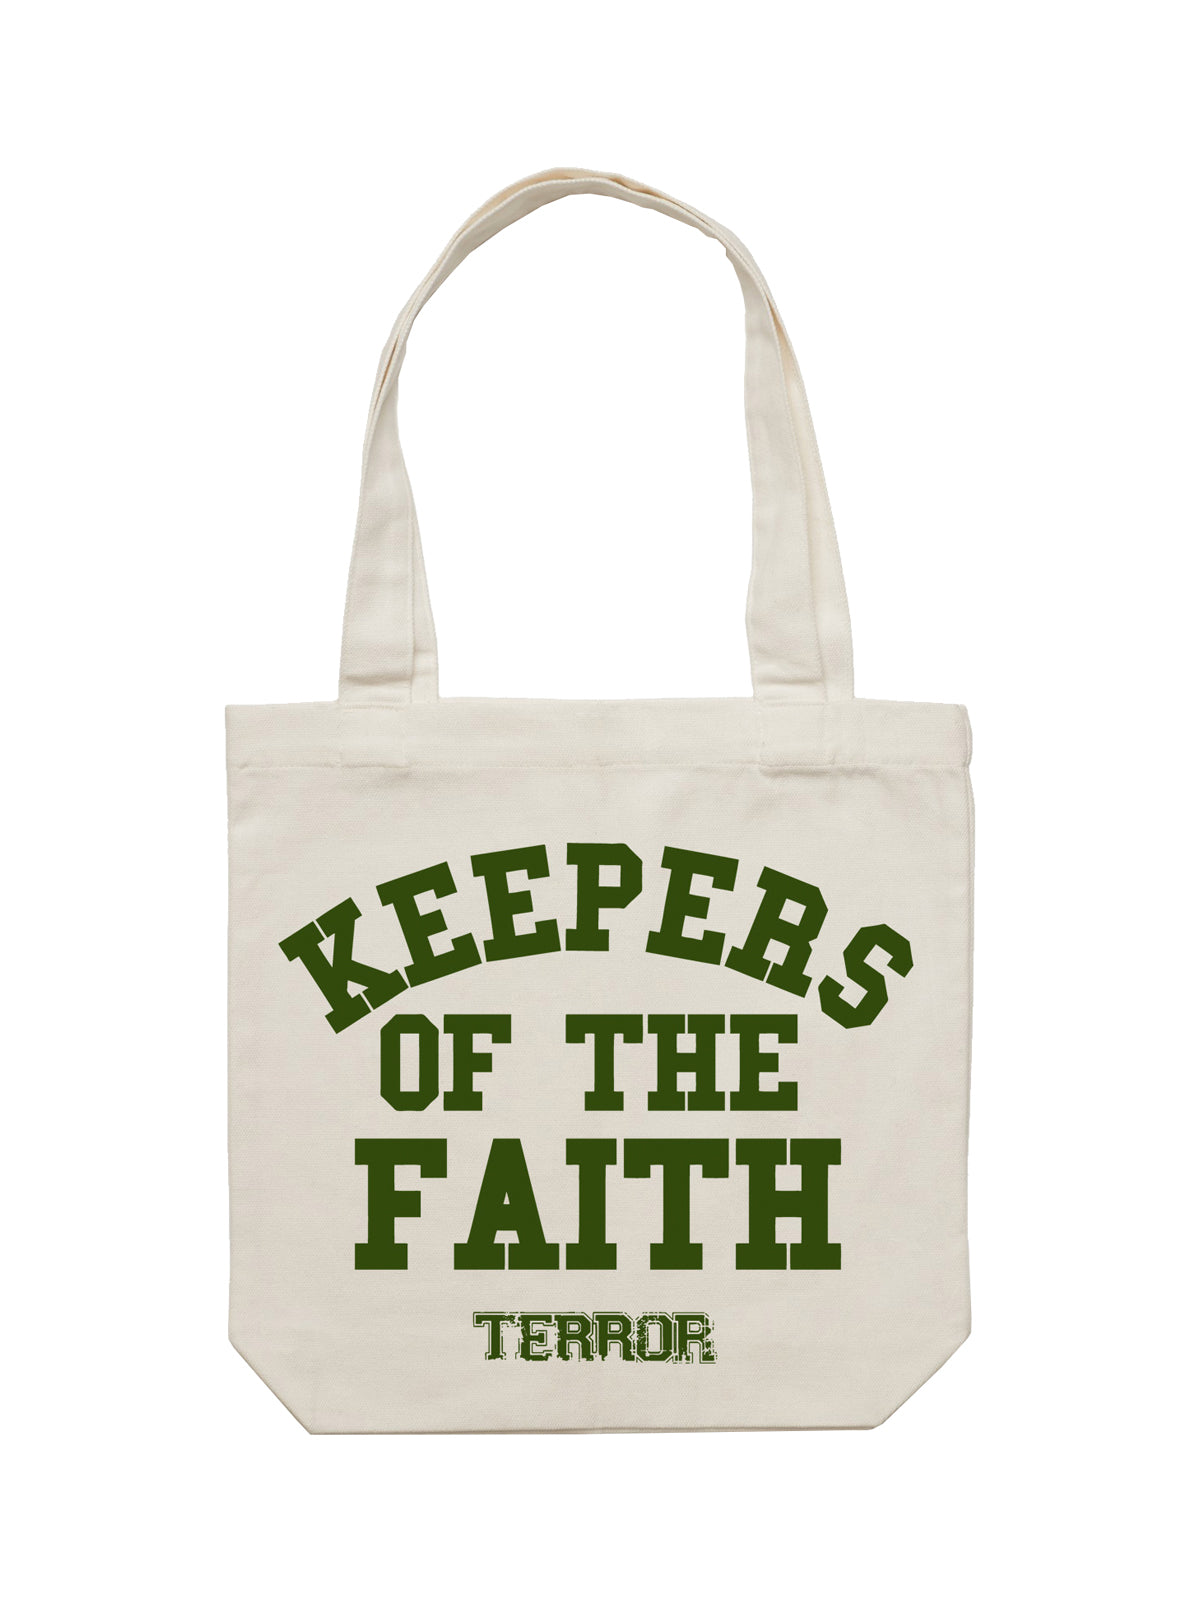 Terror - KOTF Tote Bag - SHIPS MAY 28 - Merch Limited